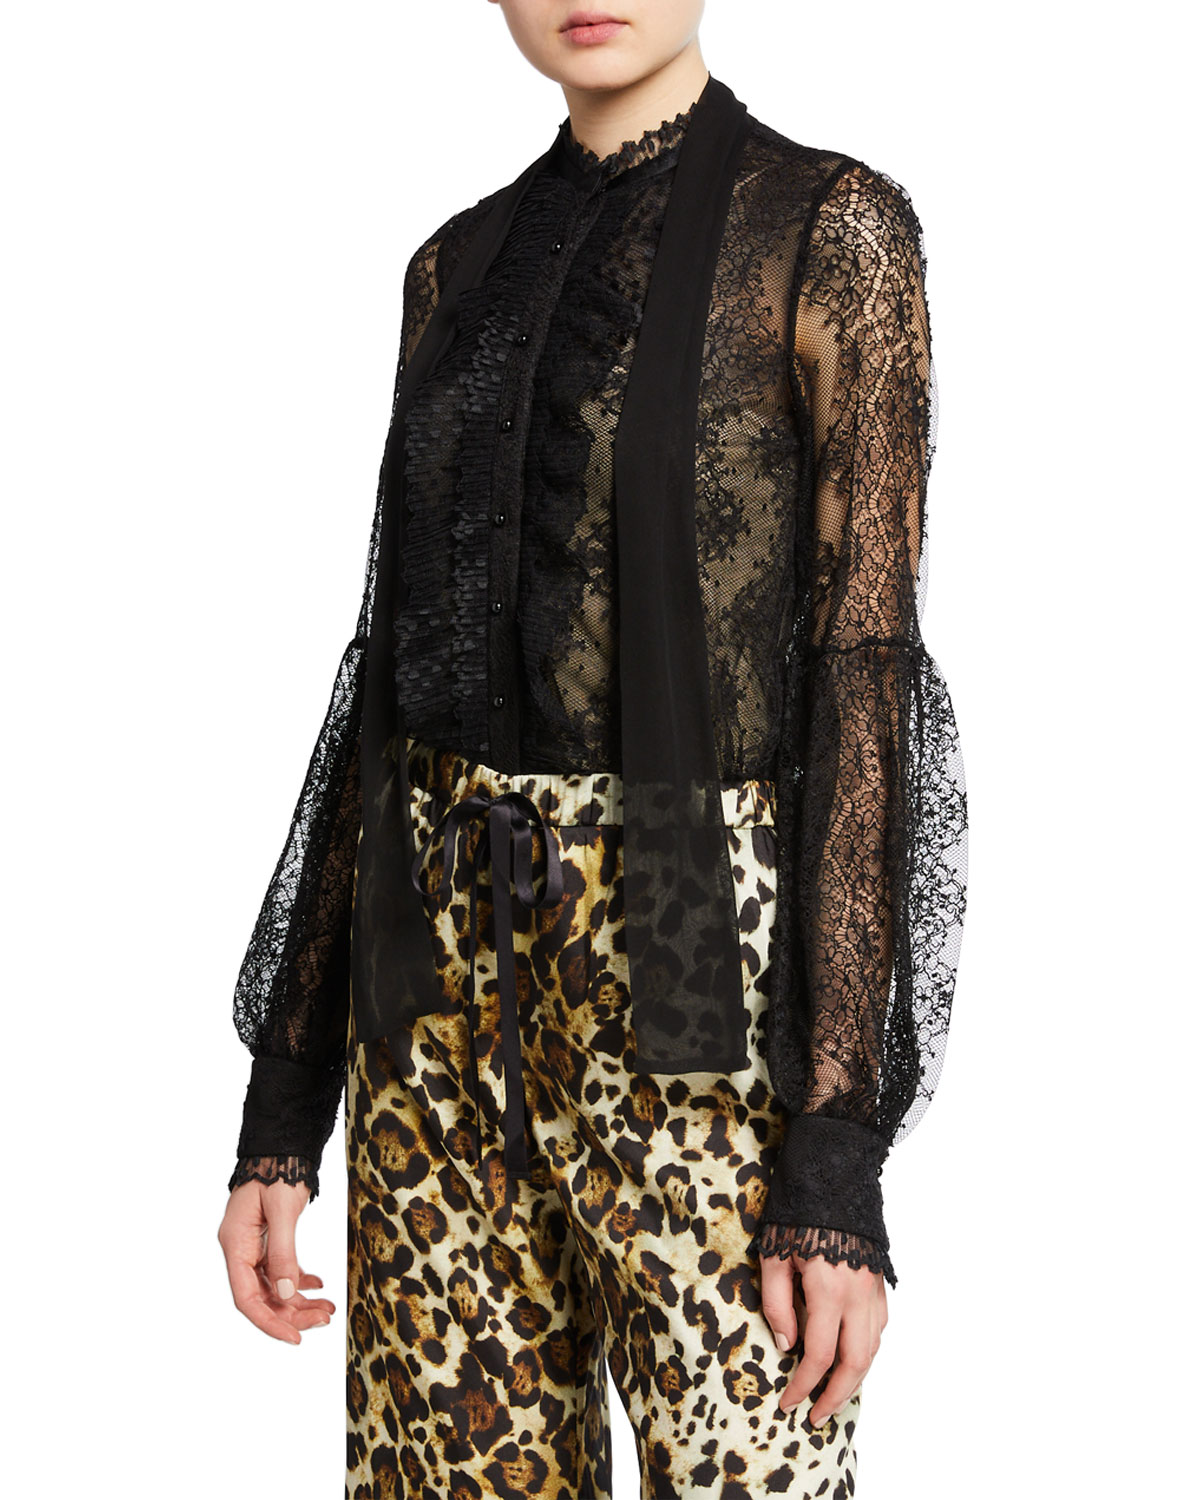 5f2b091a6a291 Alexis Aimee Button-Front Lace Long-Sleeve Top In Black